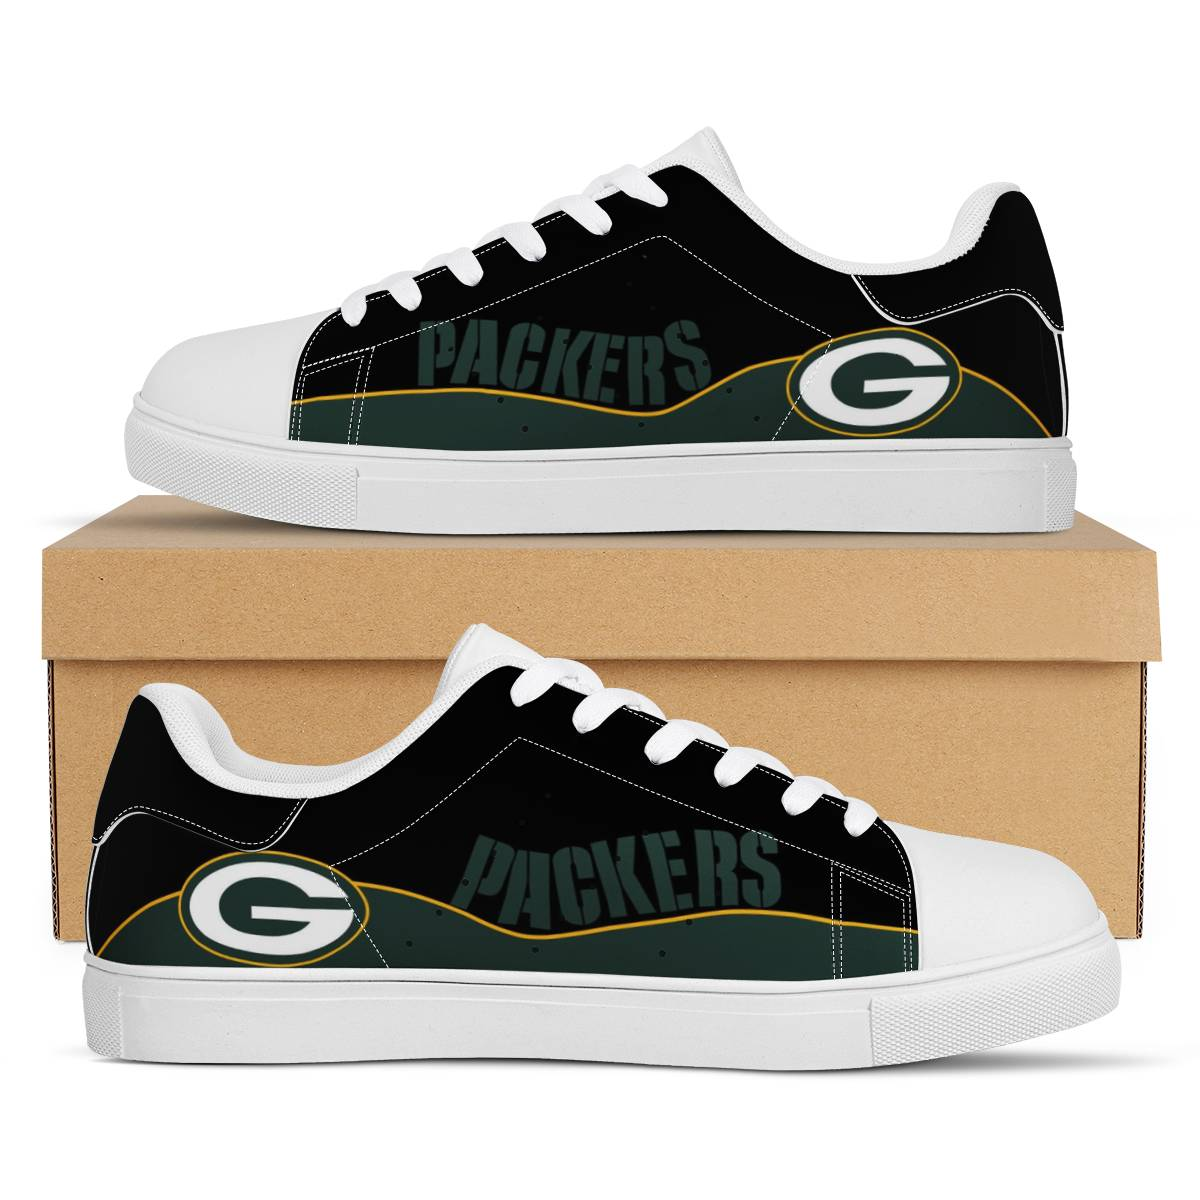 Men's Green Bay Packers Low Top Leather Sneakers 003